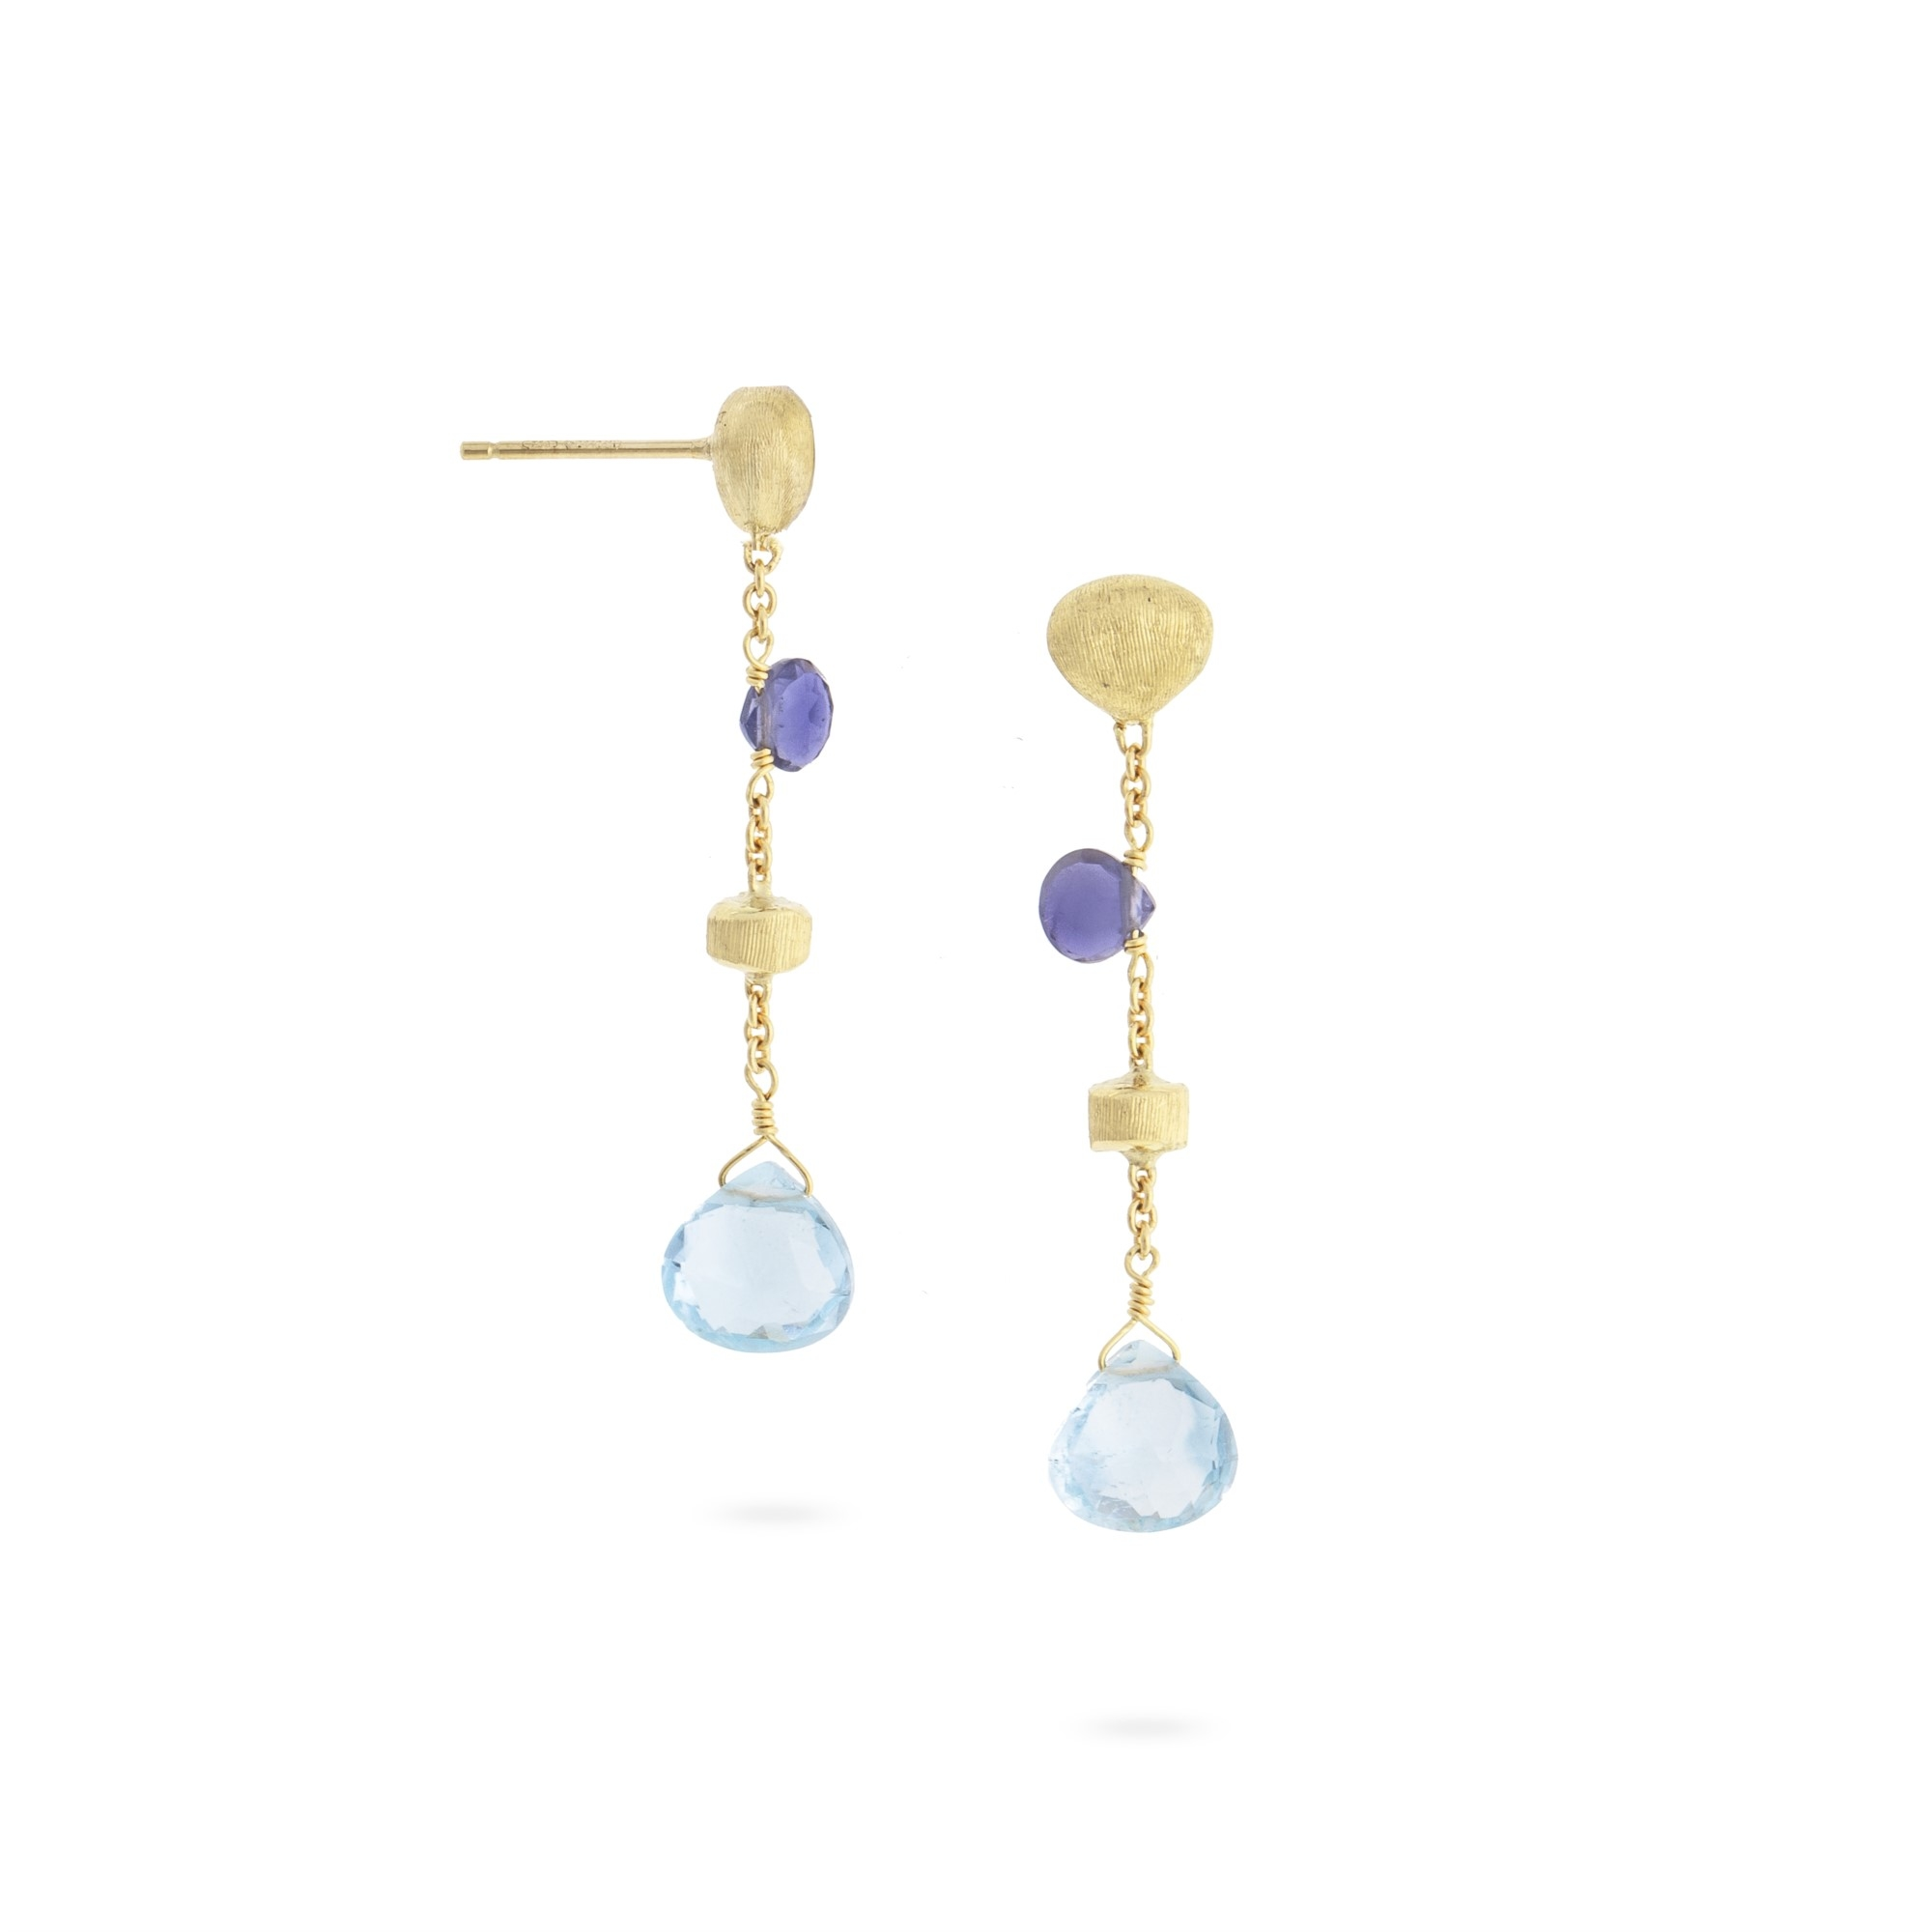 Marco Bicego 18K Yellow Gold    Gold Earrings with Stones OB1554 MIX240 Y